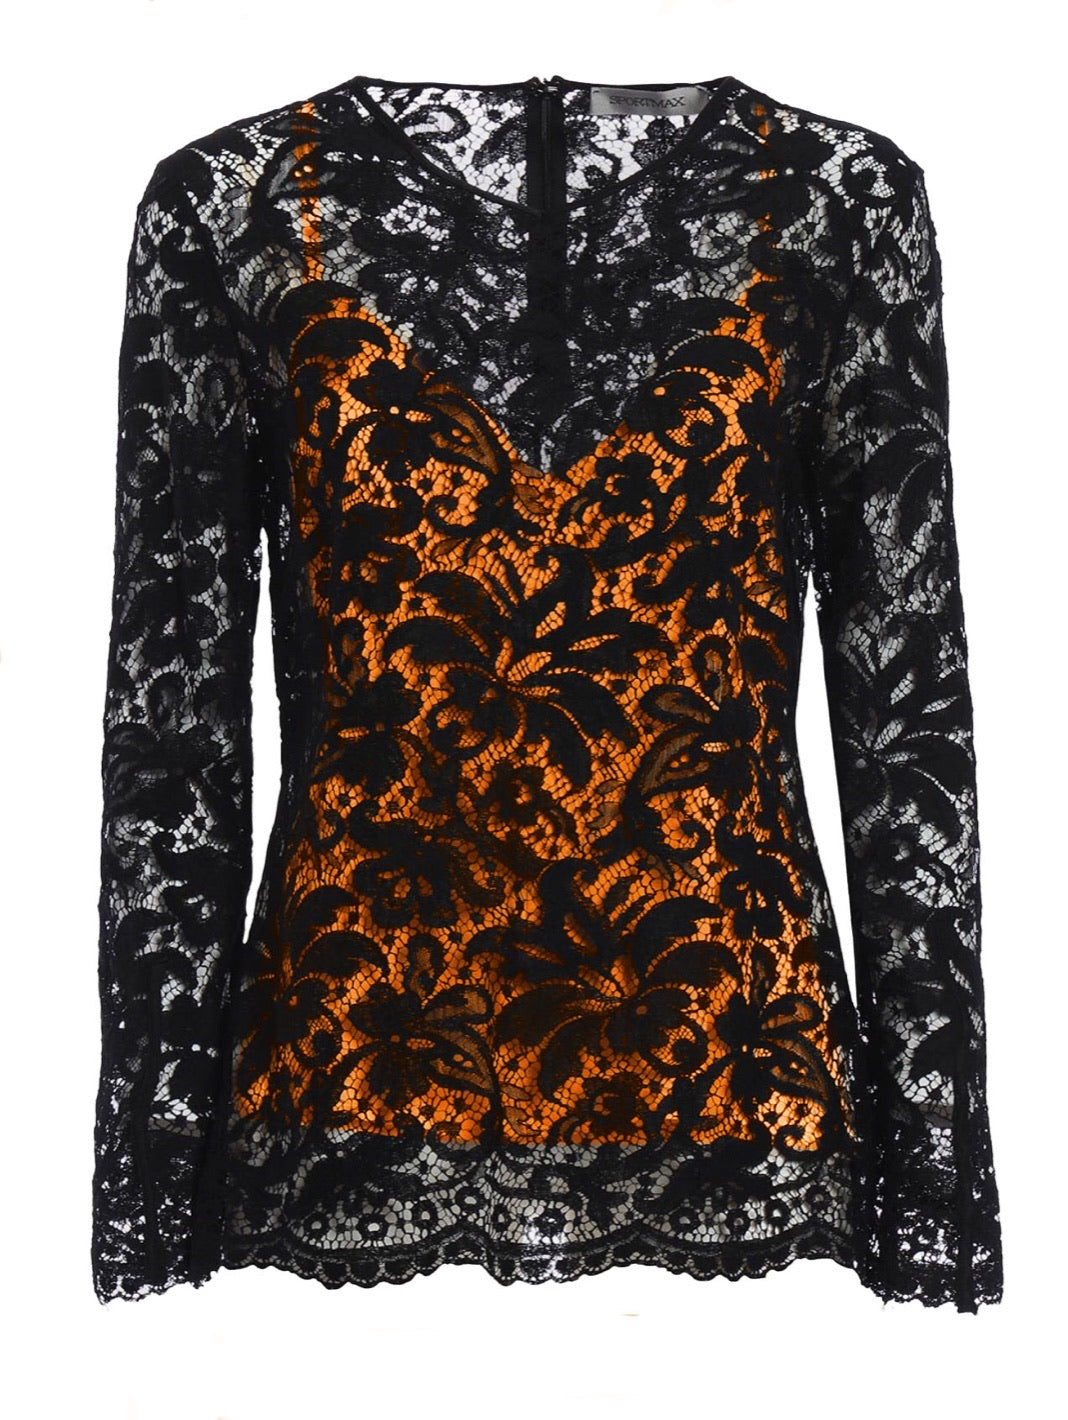 Odessa Lace Cotton-Blend Blouse - The Bobby Boga